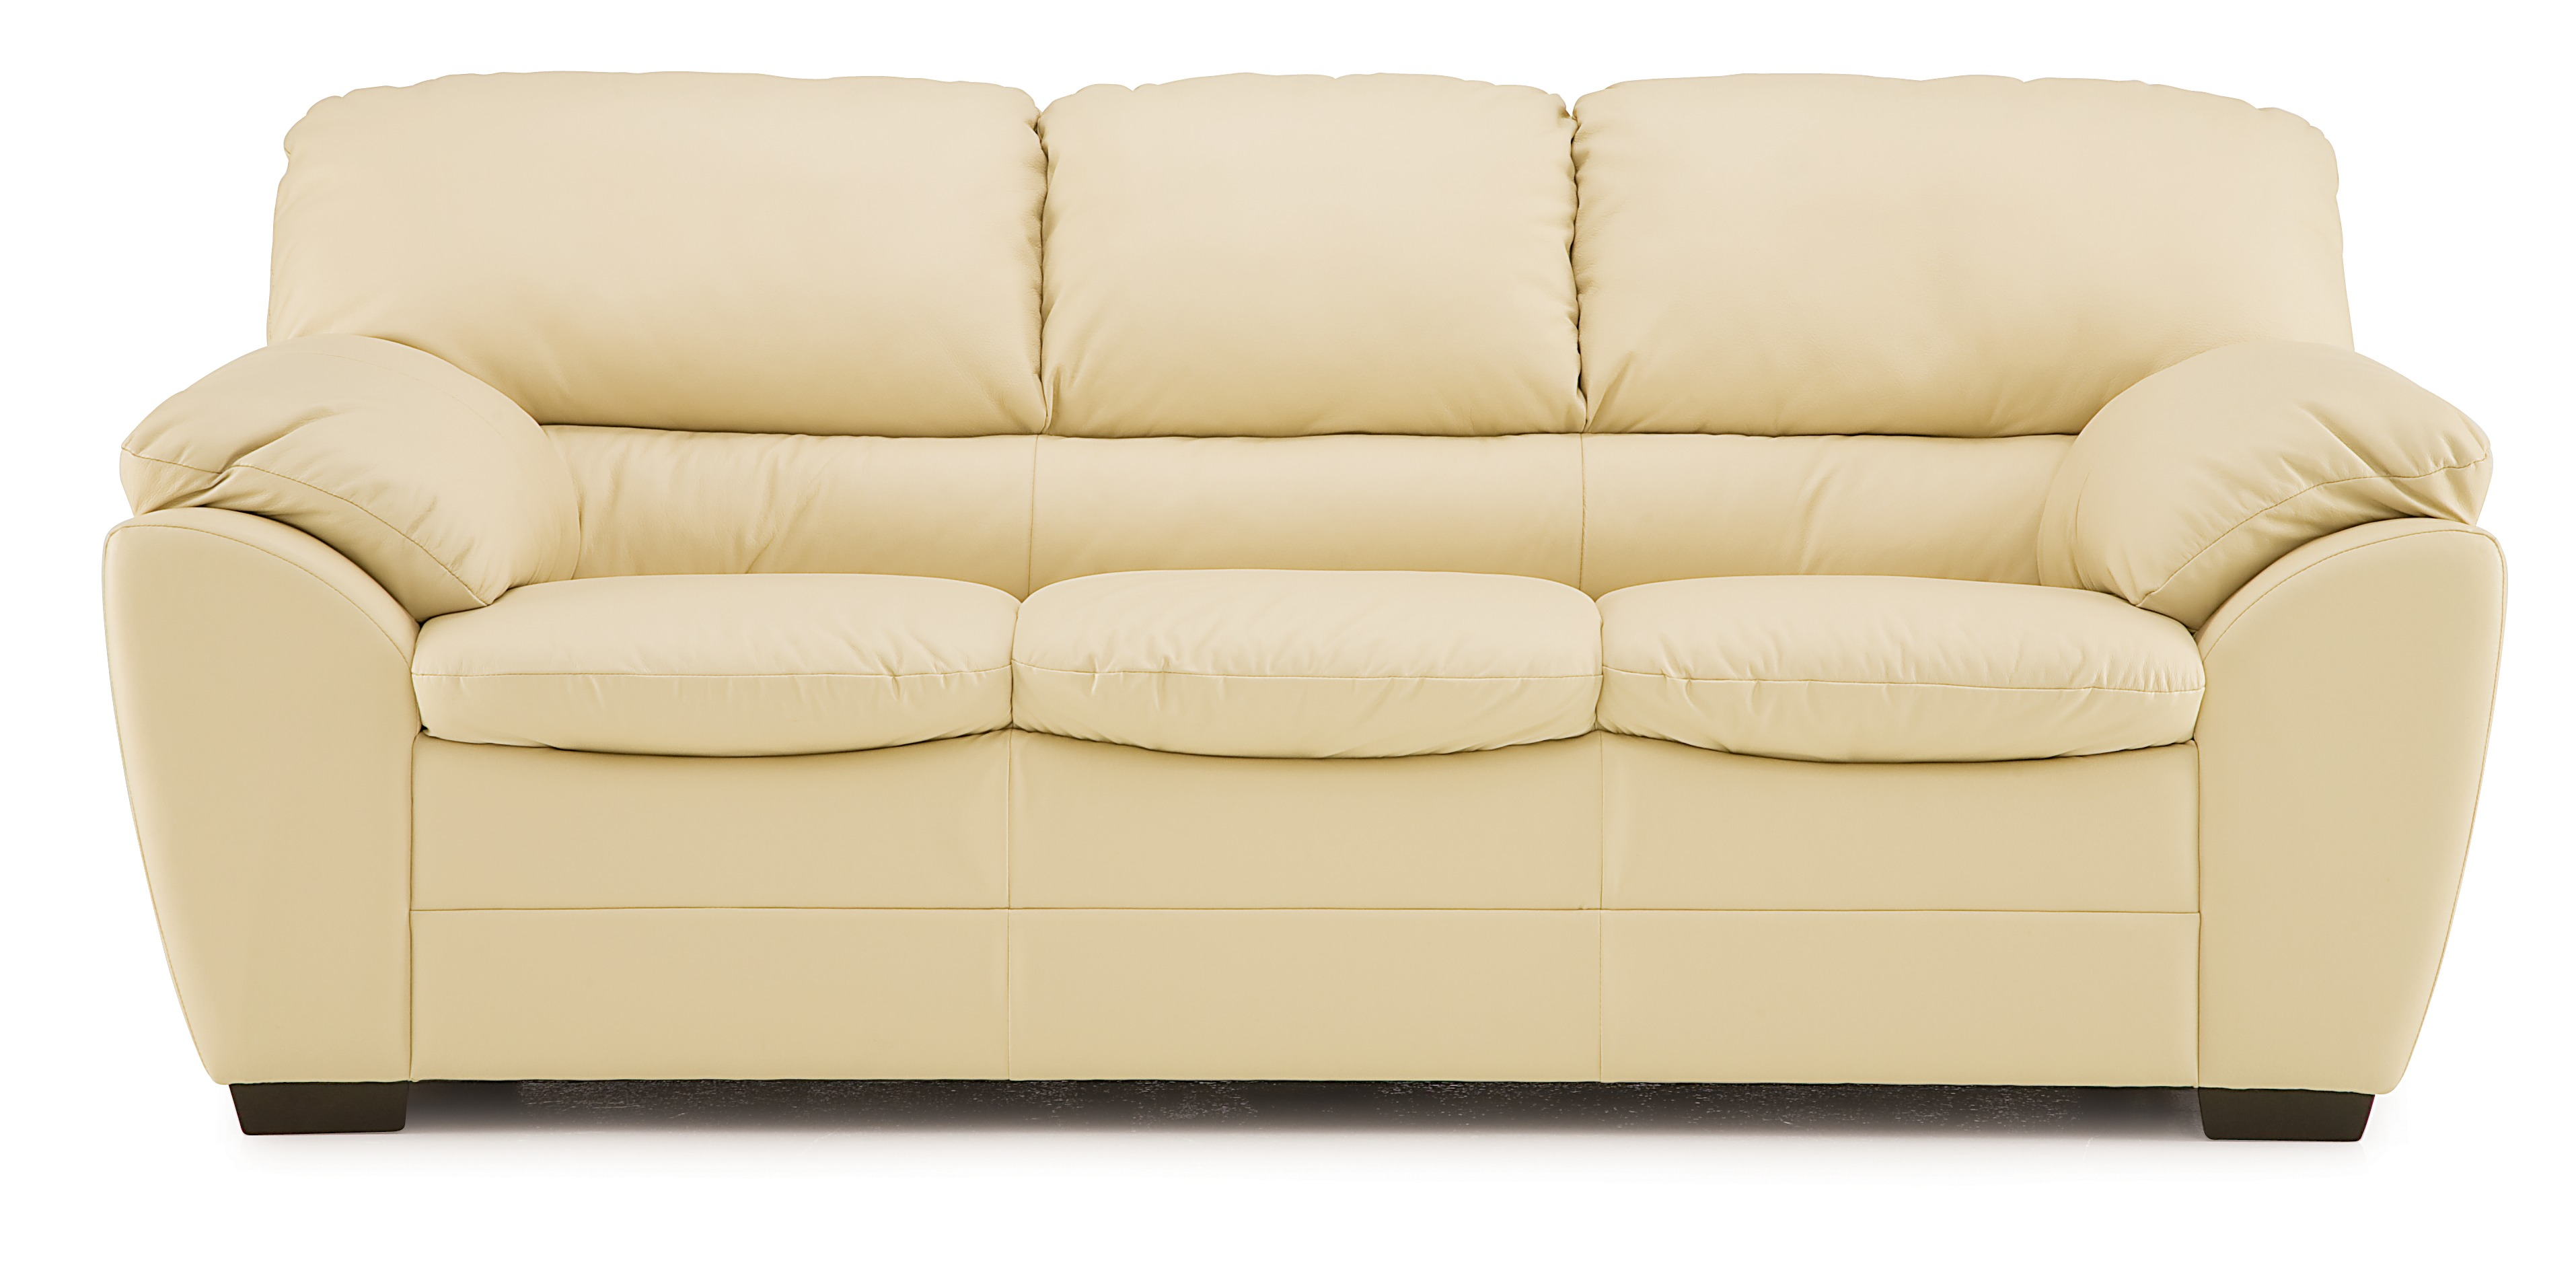 Faron 77950 Leather Sofa 54